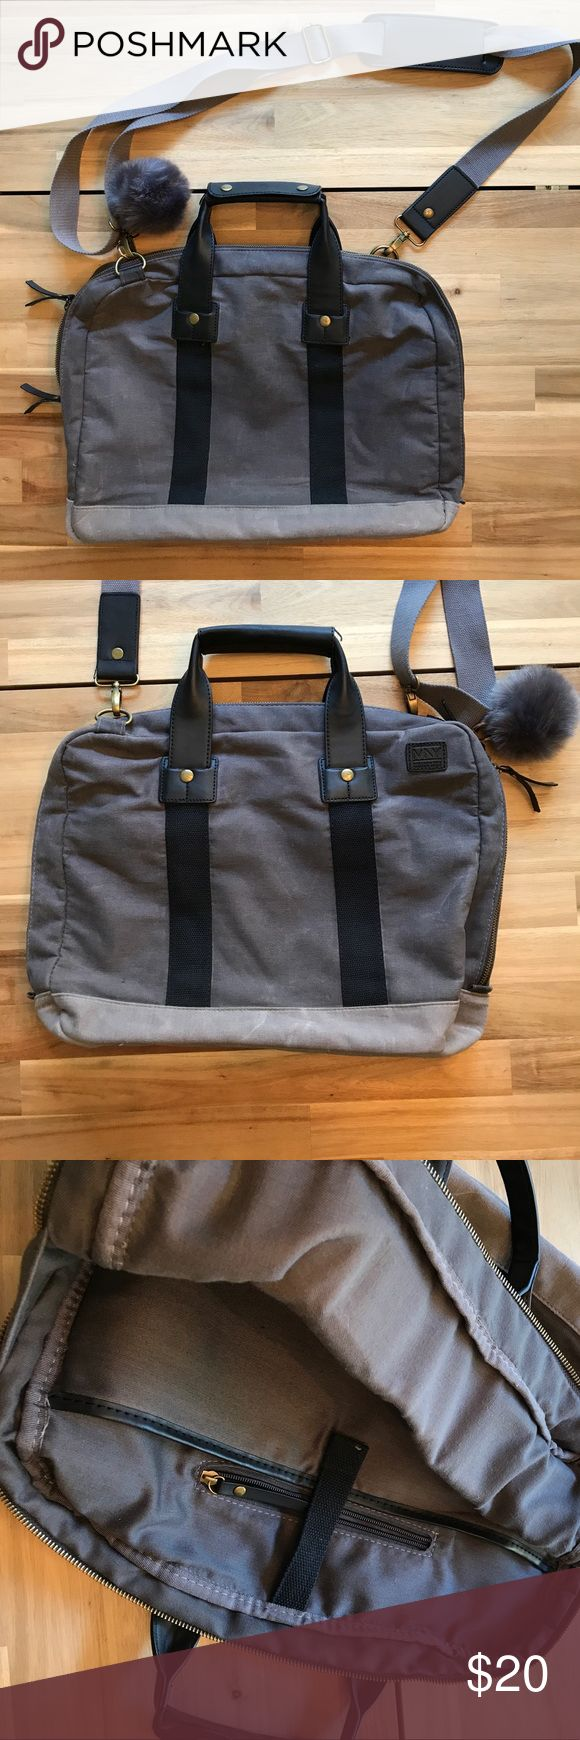 "Marc New York Canvas Commuter Bag Great bag for your commute to and from work! Gently used zippered computer bag. Stylish canvas, zippered inside pocket for valuables, adjustable shoulder strap, snap handles, inside pocket that fits up tp 15"" macbook perfectly, and main compartment for magazines, notebooks, and more. Check pics closely, natural bumps and bruises since canvas. Free pompom! Bags Laptop Bags"